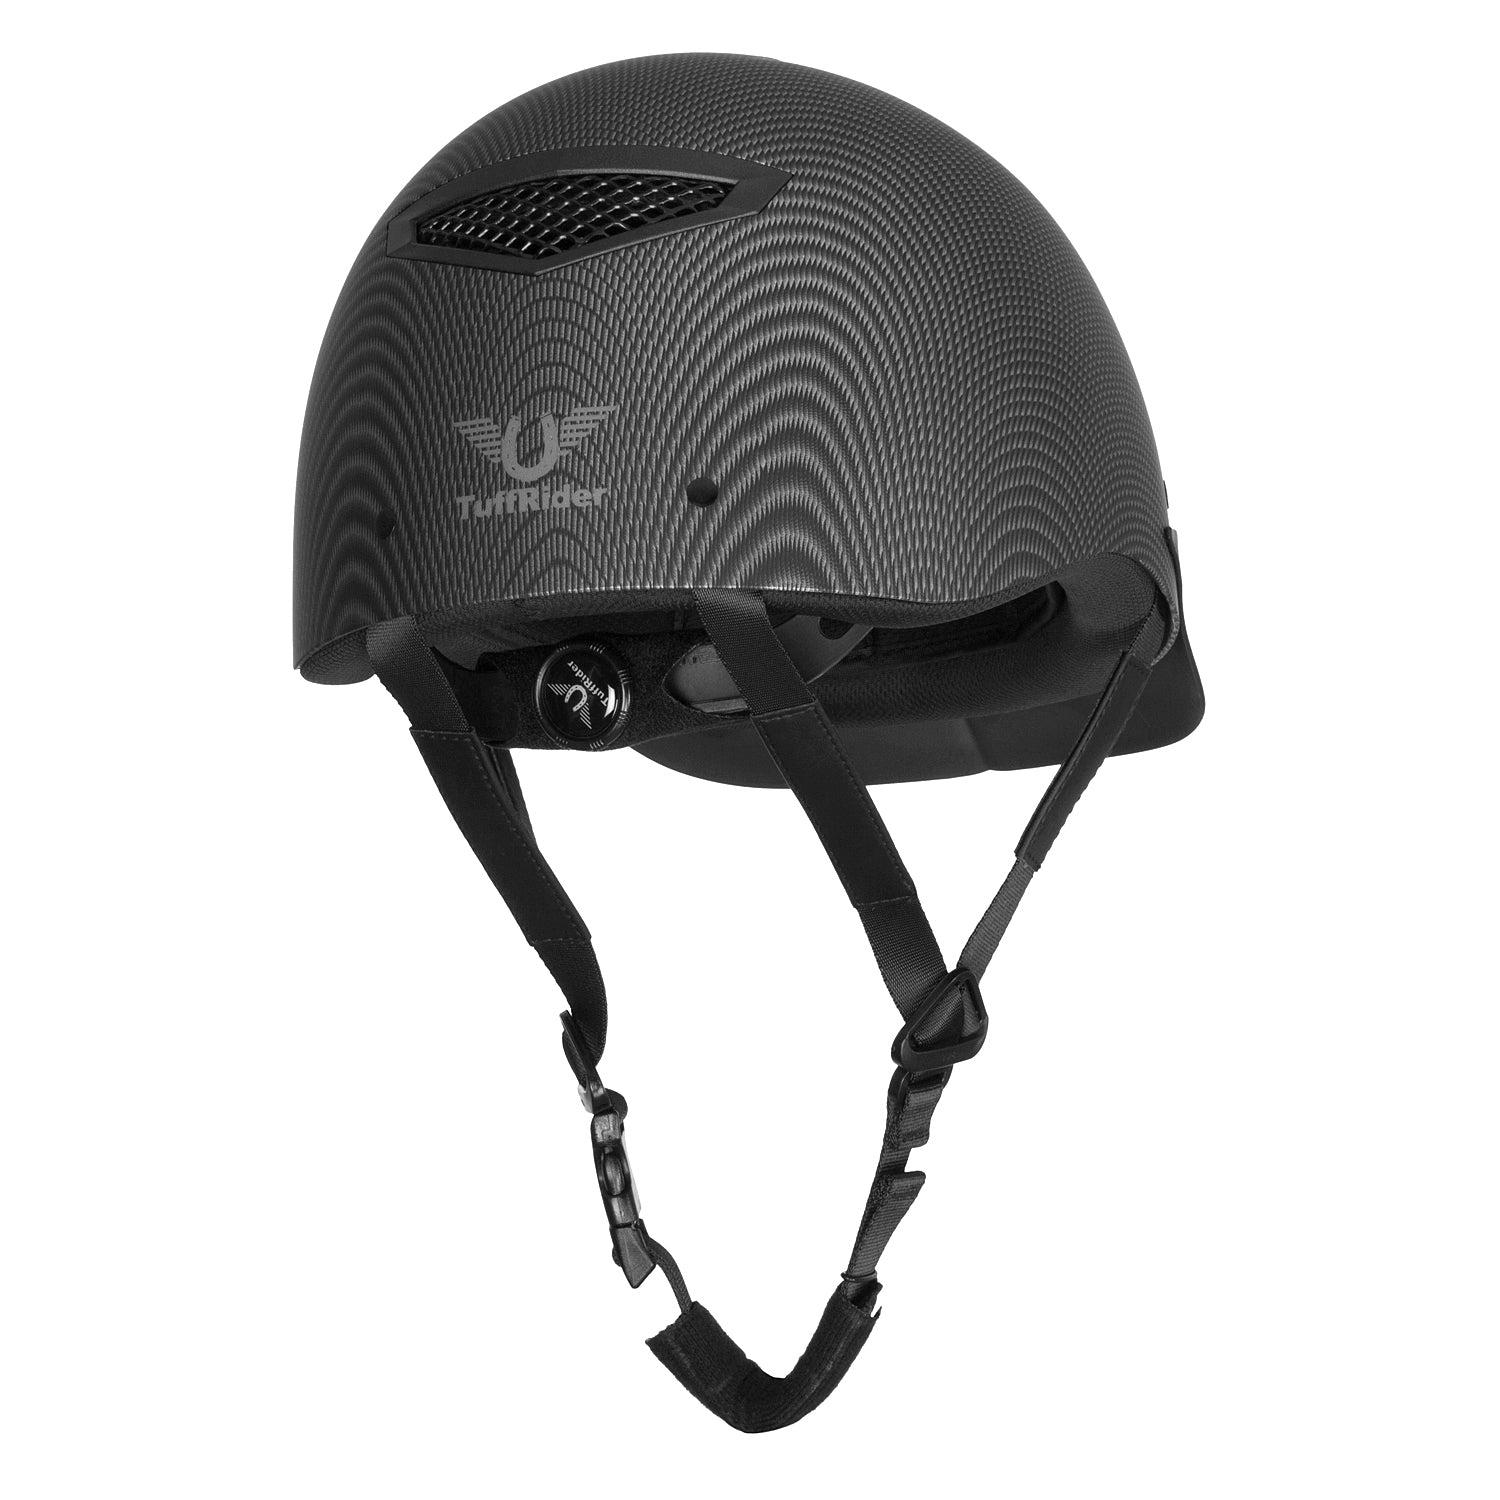 TuffRider Carbon Fiber Shell Helmet| Schooling Protective Head Gear for Equestrian Riders - SEI Certified, Tough and Durable - Black | Size - Large_1